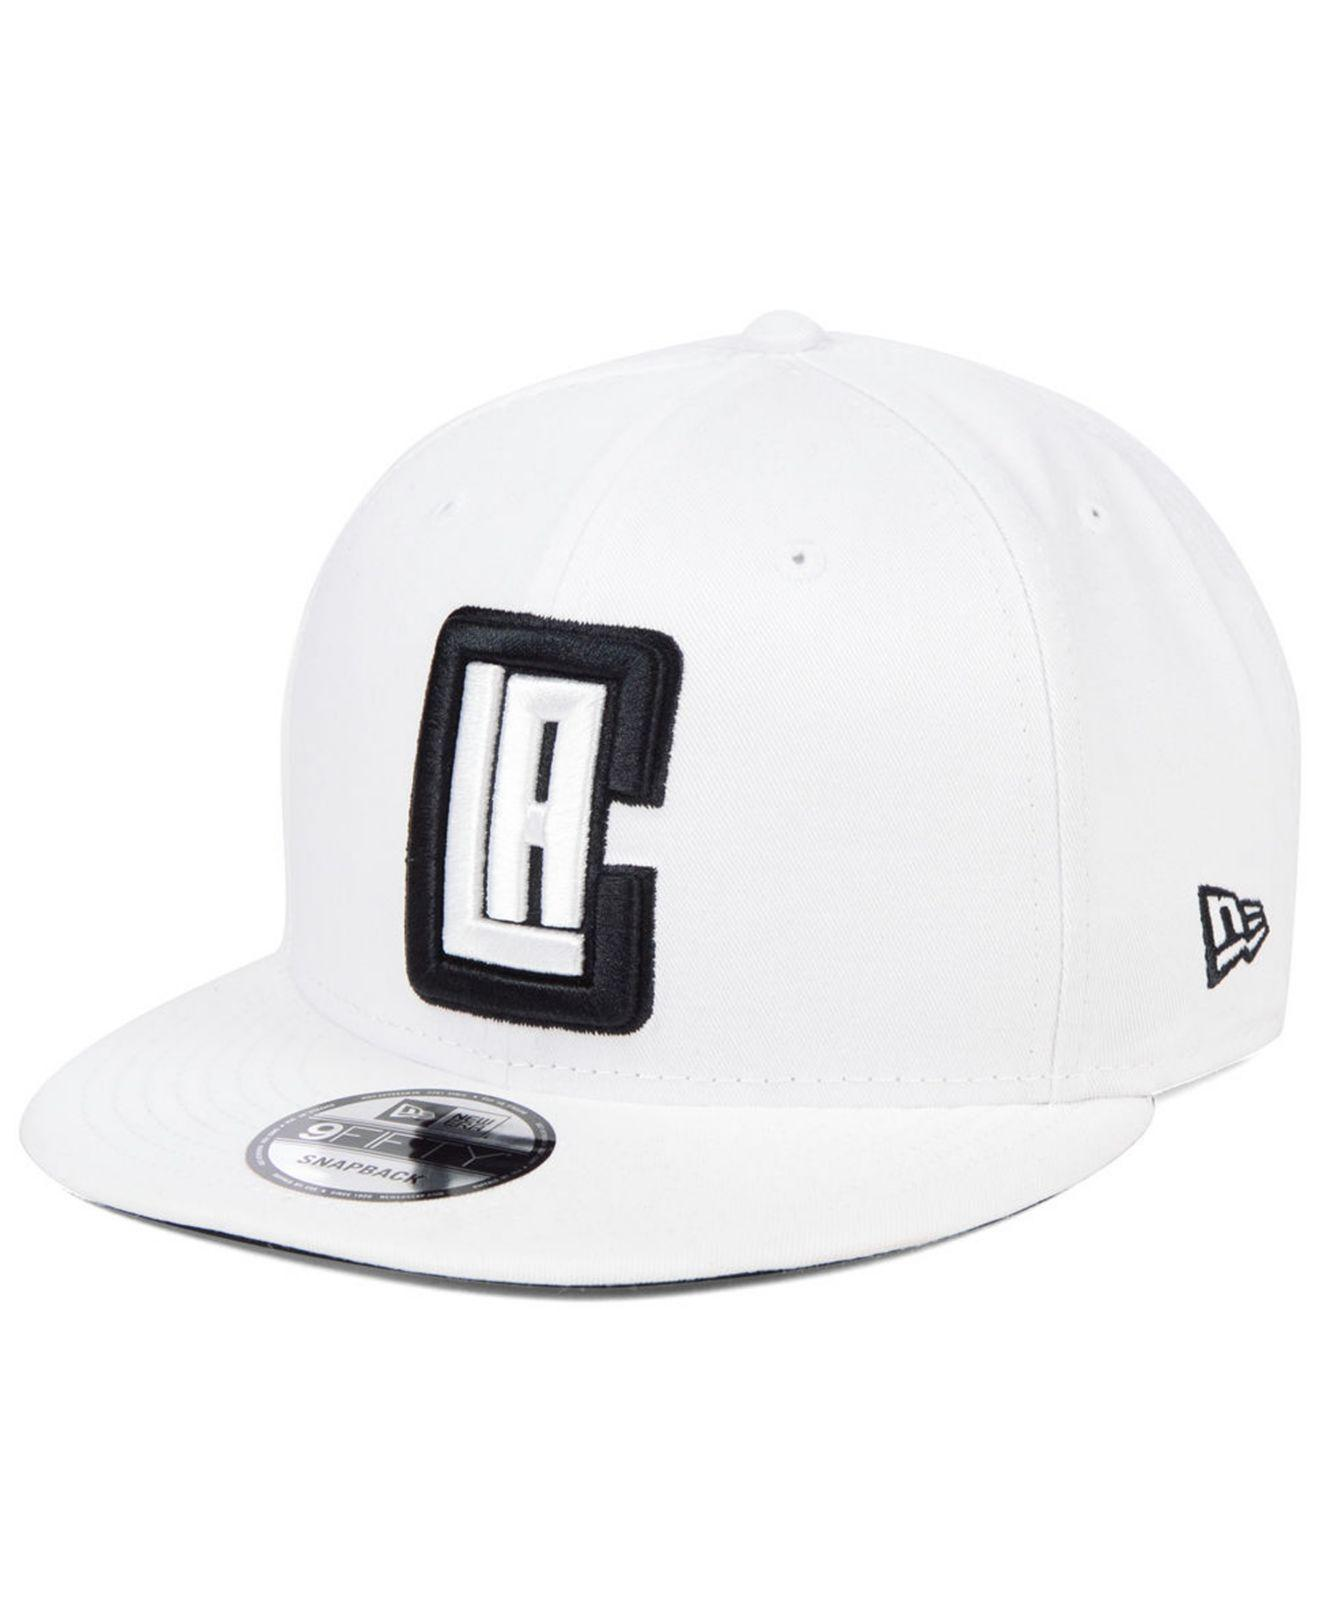 new arrival 32c73 9aefd KTZ. Men s White Los Angeles Clippers Night Sky 9fifty Snapback Cap